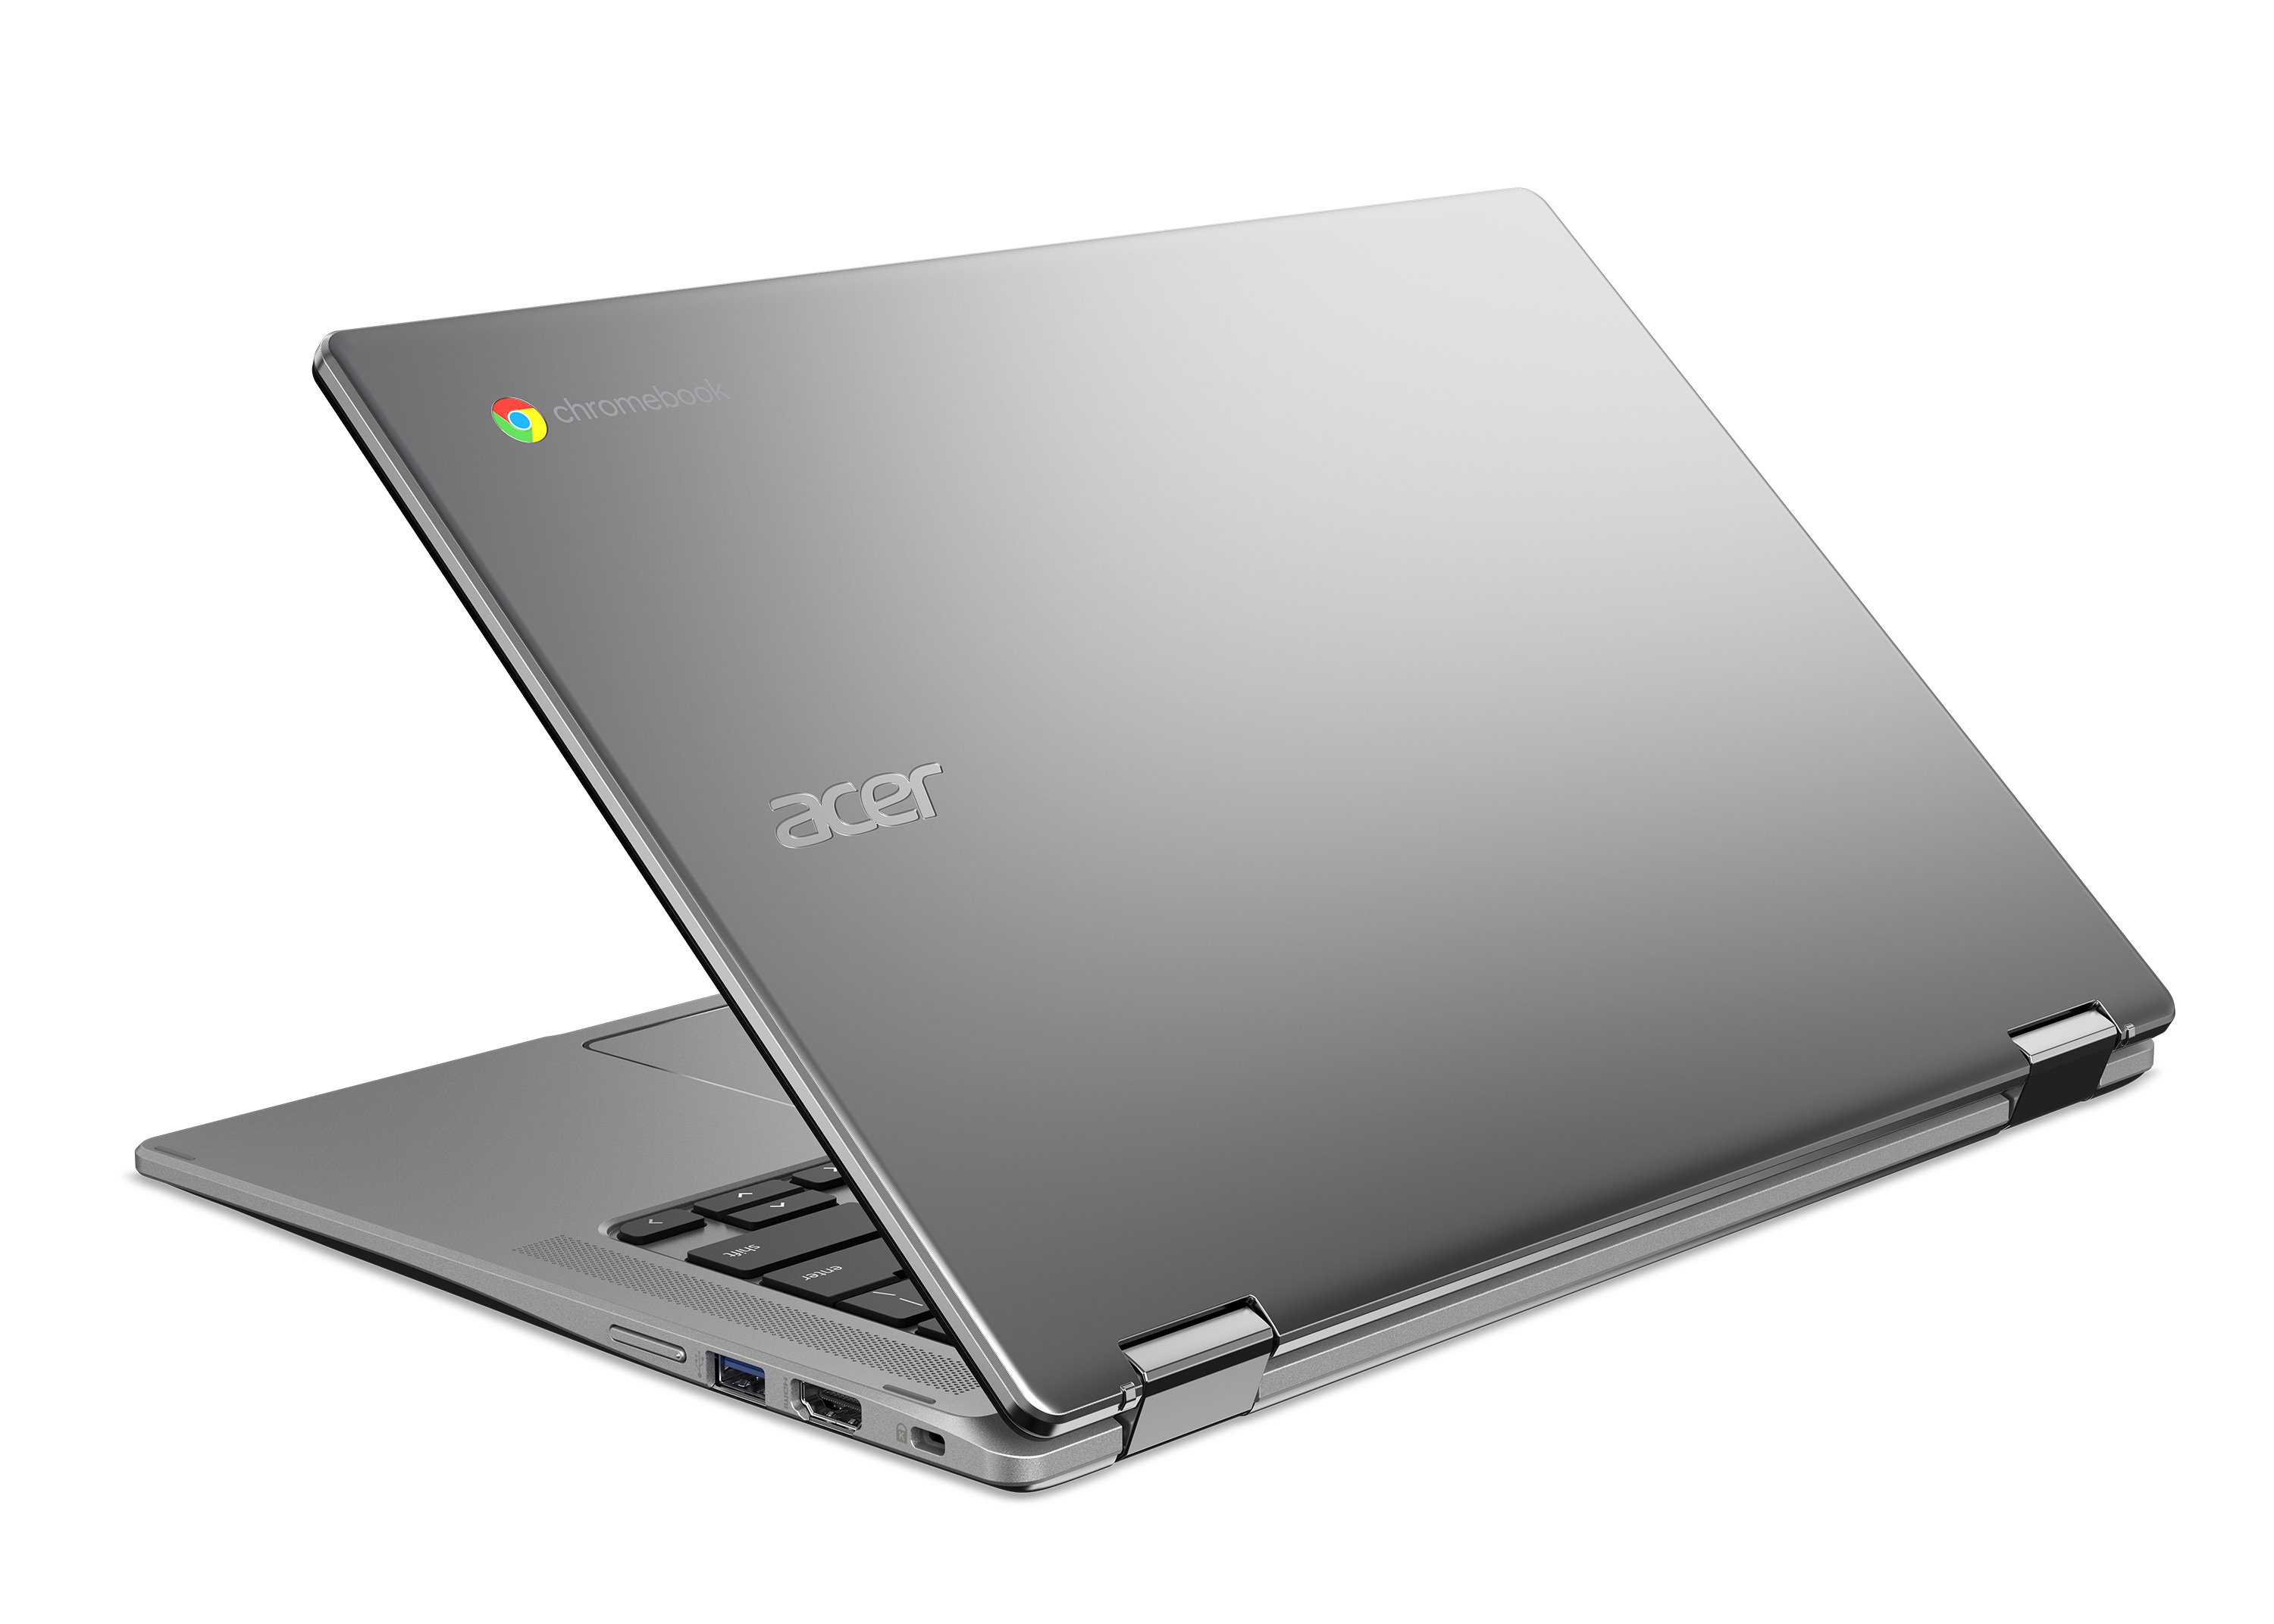 The cheaper Chromebook Spin 314 appears to have a colored Chromebook logo, unlike the Spin 514.